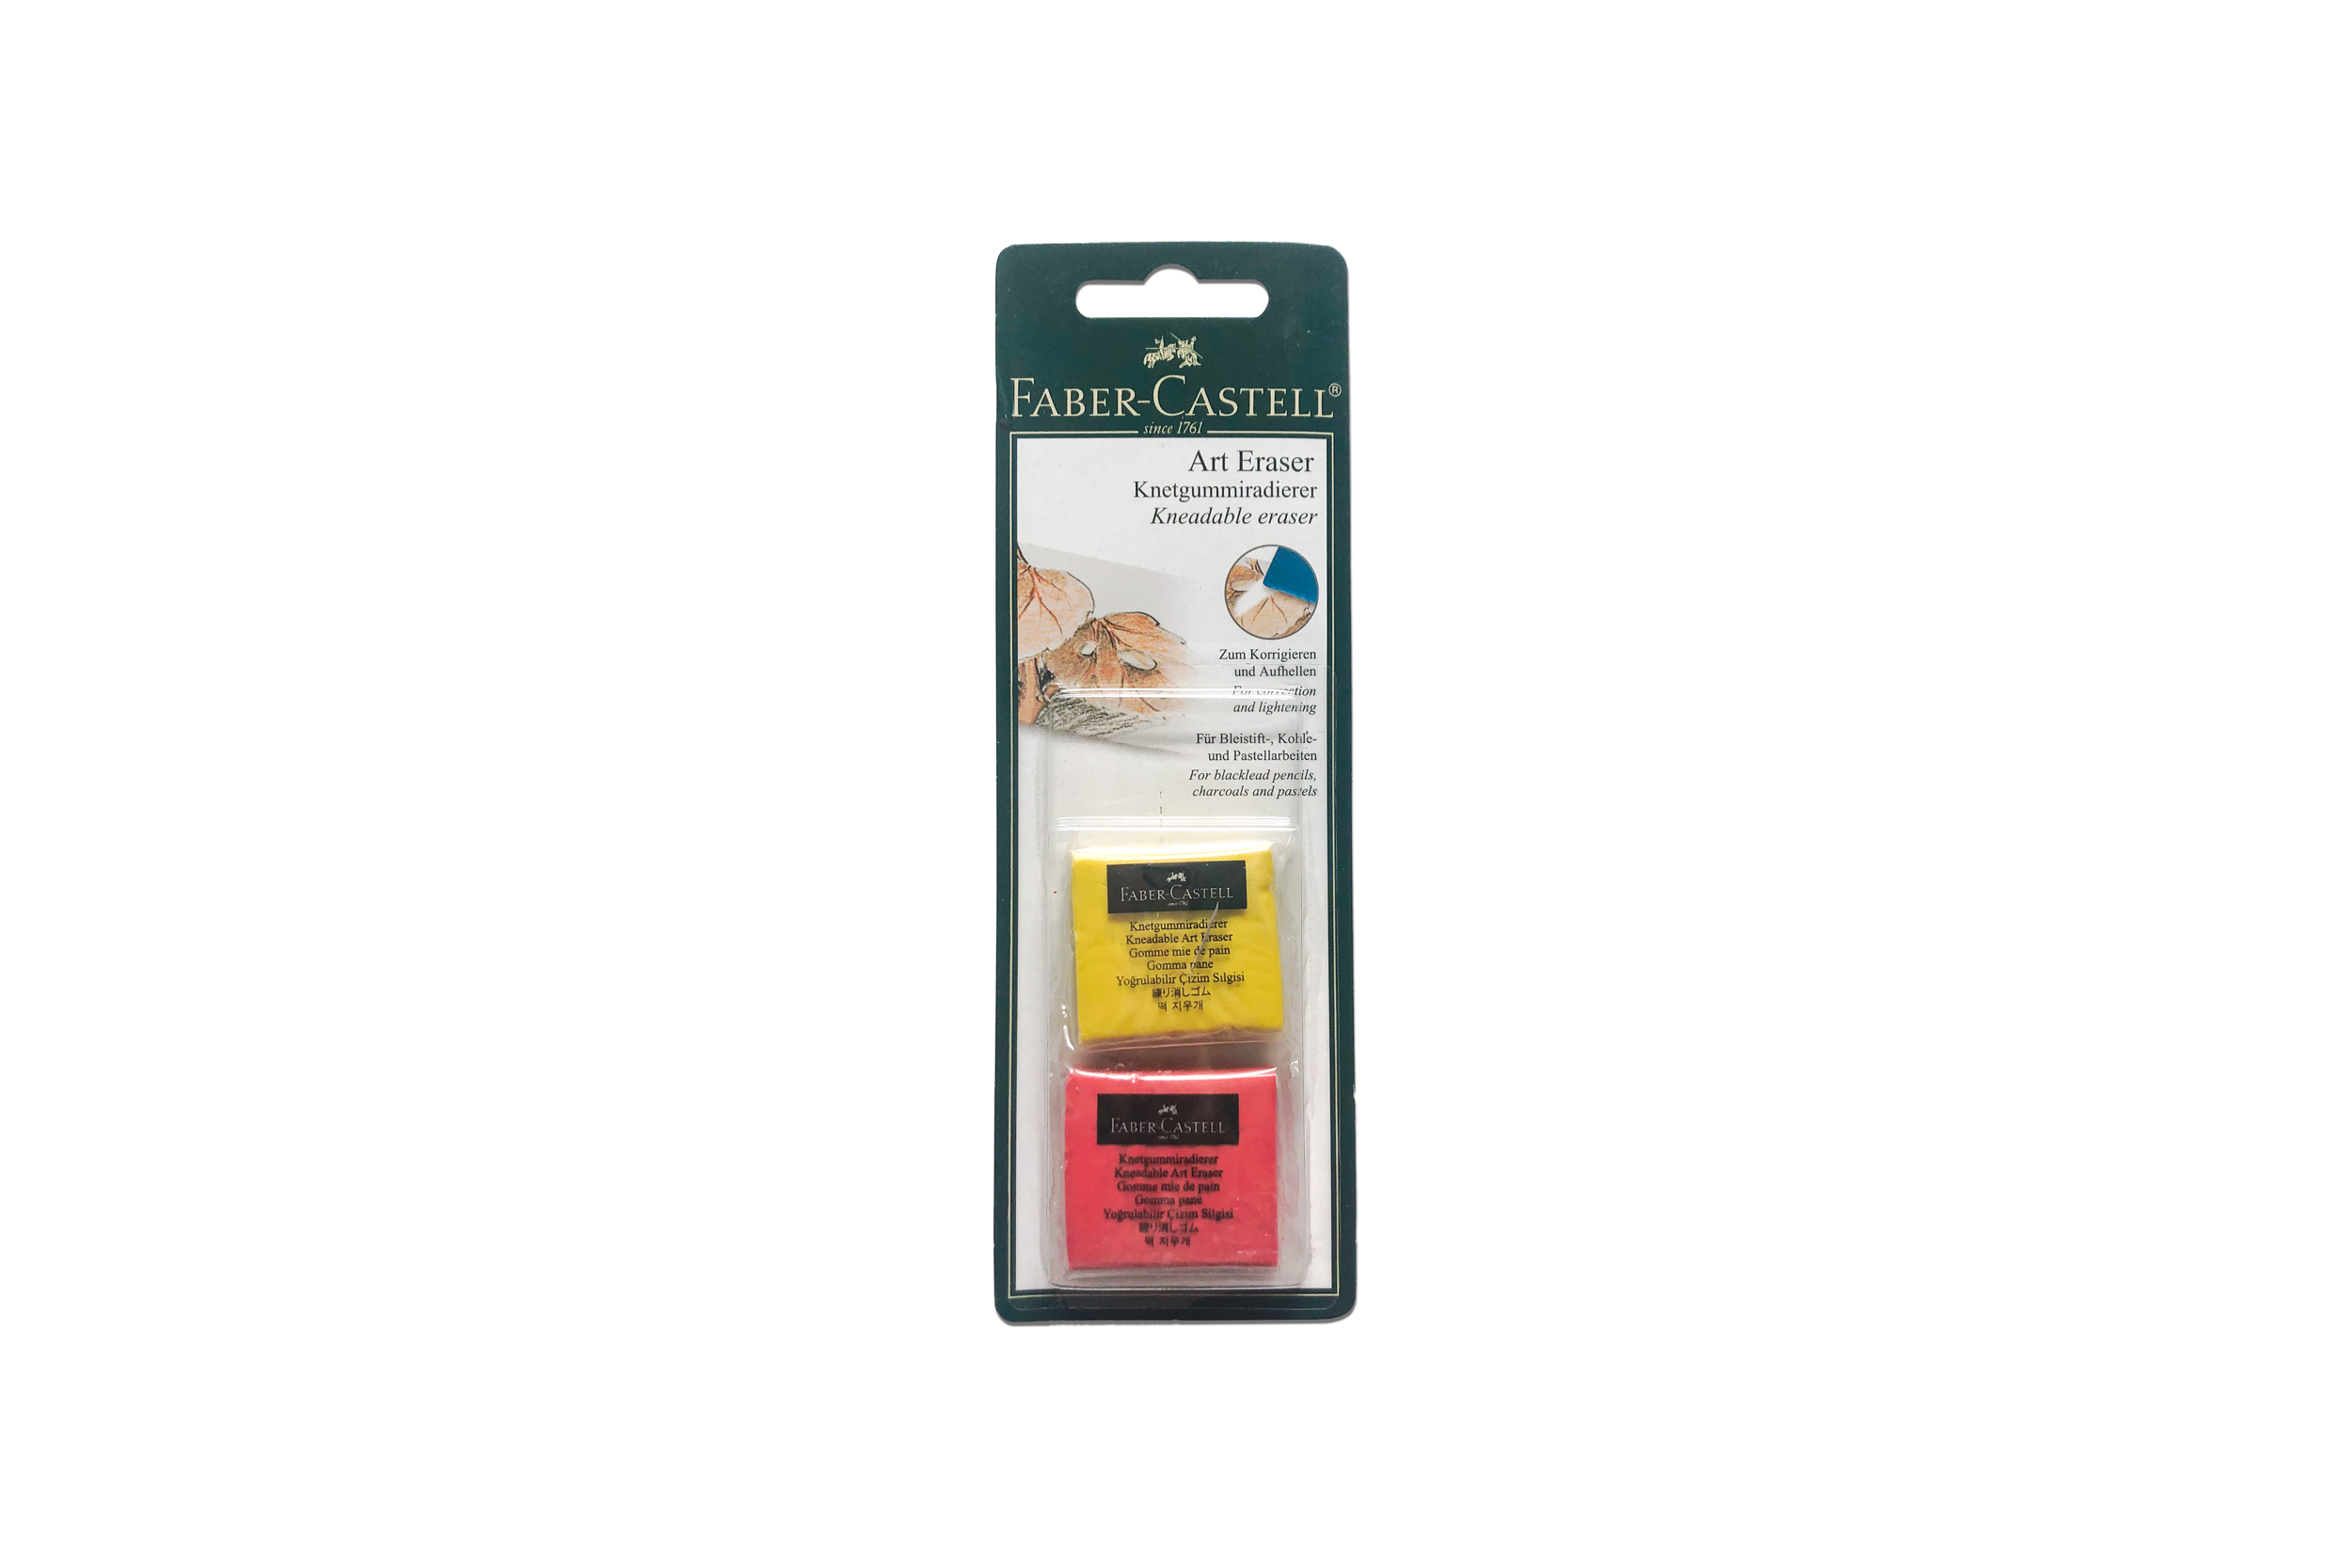 FABER-CASTELL KNEADABLE COLORED ART ERASERS - SET OF 2